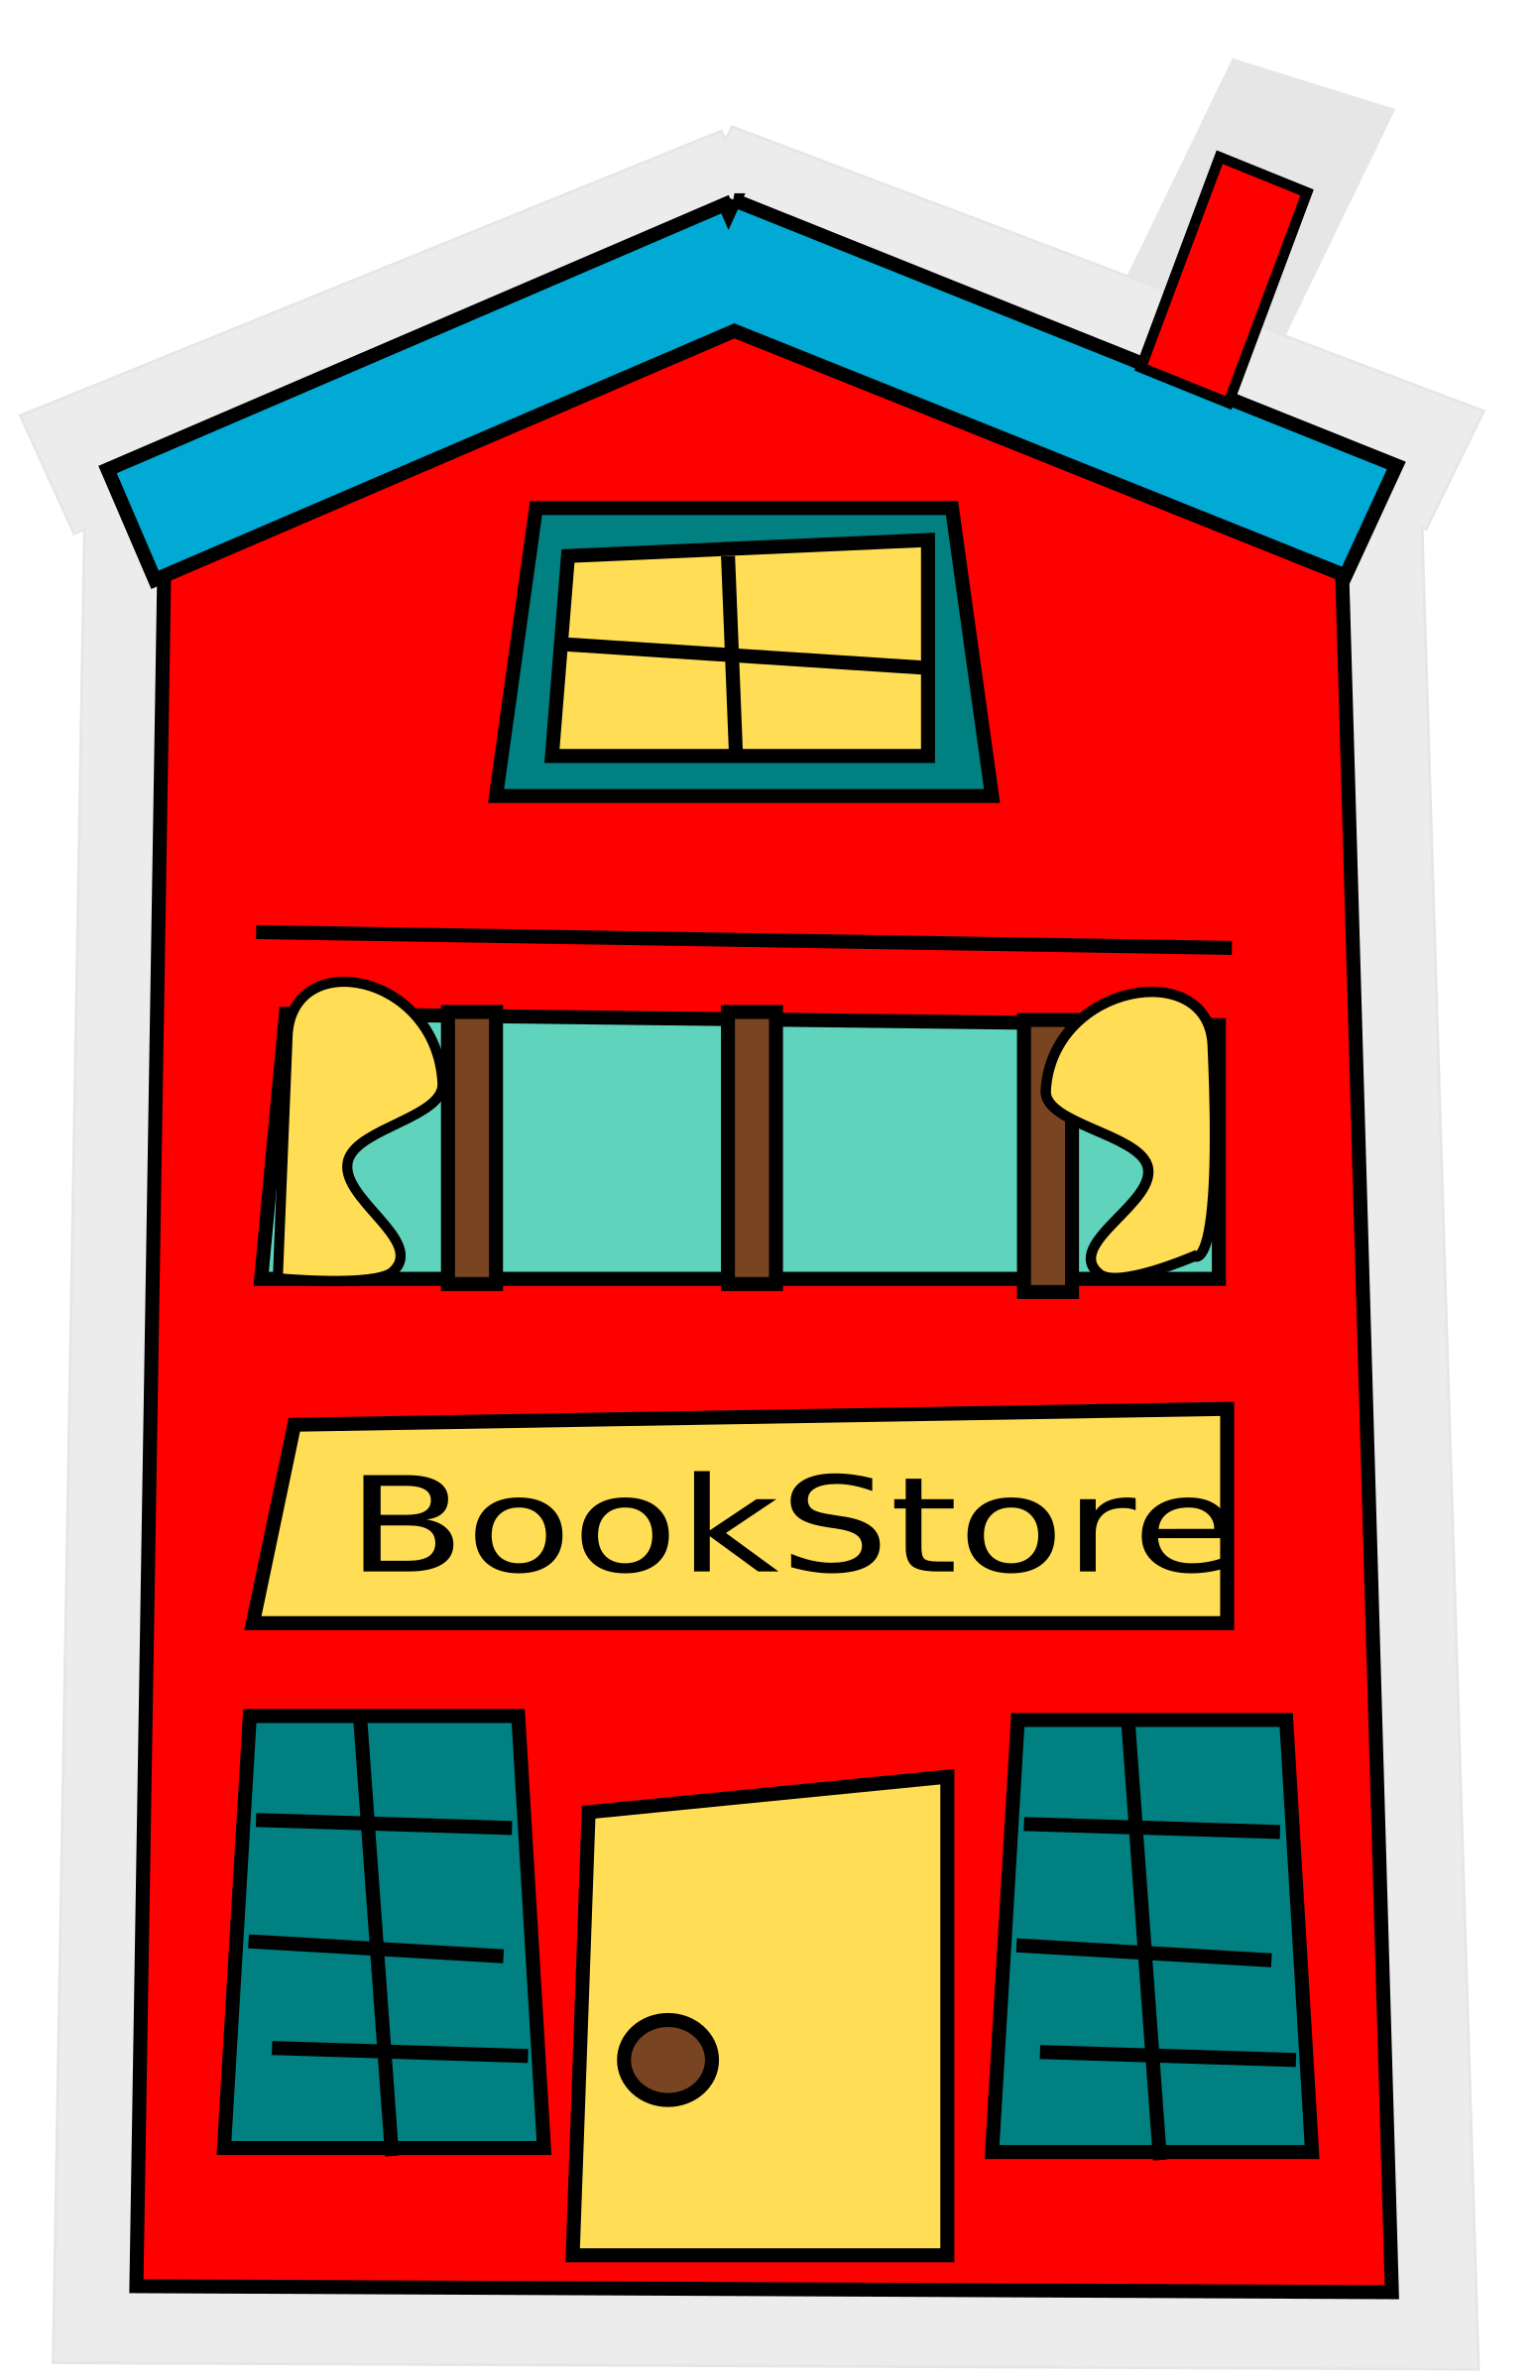 Building clipart cartoon. Bookstore big image png